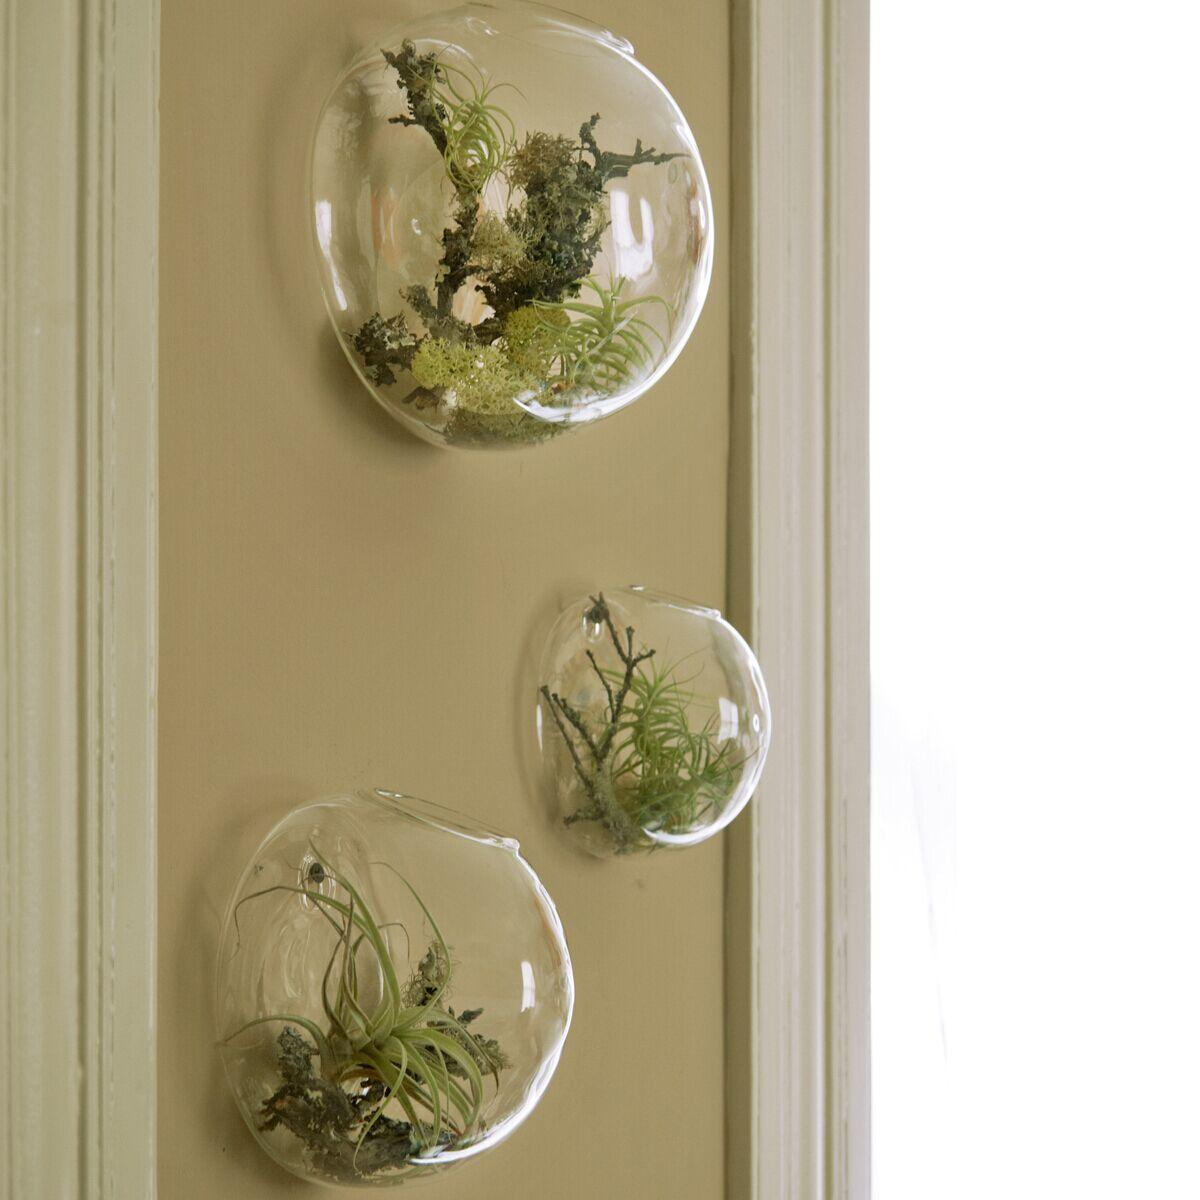 3Pcs/set Wall Bubble Terrariums Glass Wall Vase For Flowers/indoor Plants  Wall Mounted Planter For Succulents Air Plant Holders Home Decor regarding Vase and Bowl Wall Decor (Image 4 of 30)